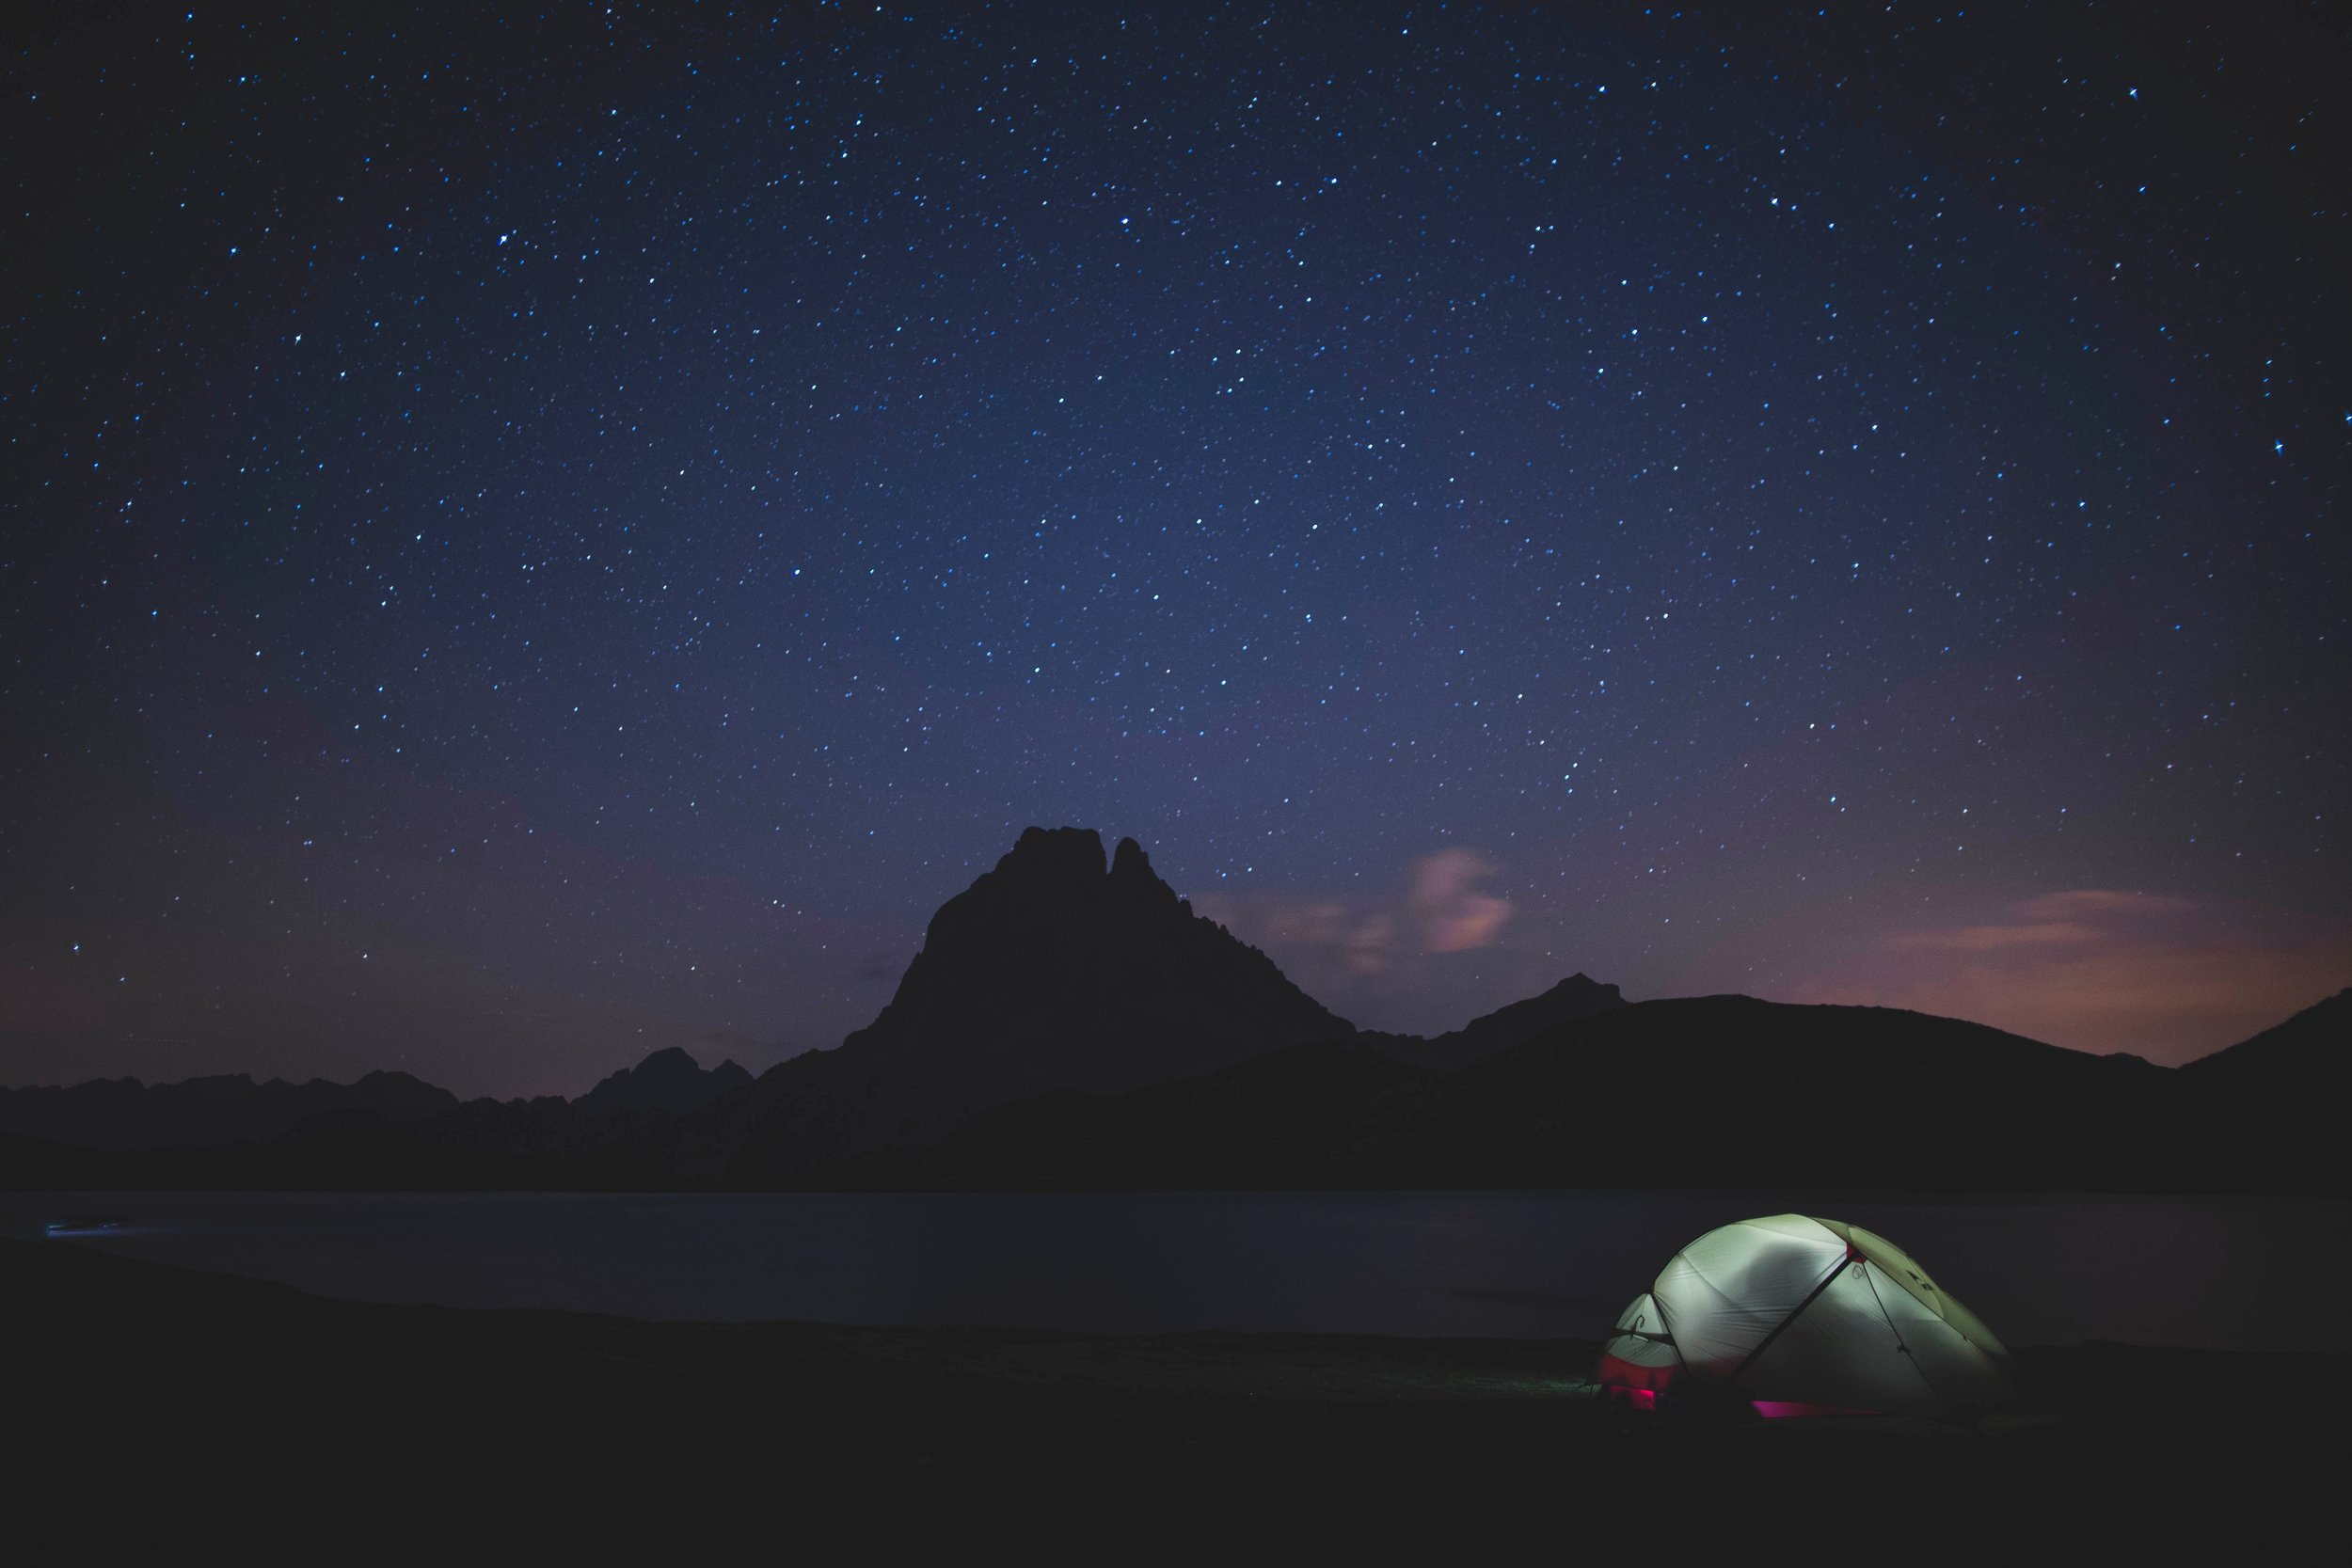 The BEST LUXURY TENT - MSR Hubba Hubba NXRead why→